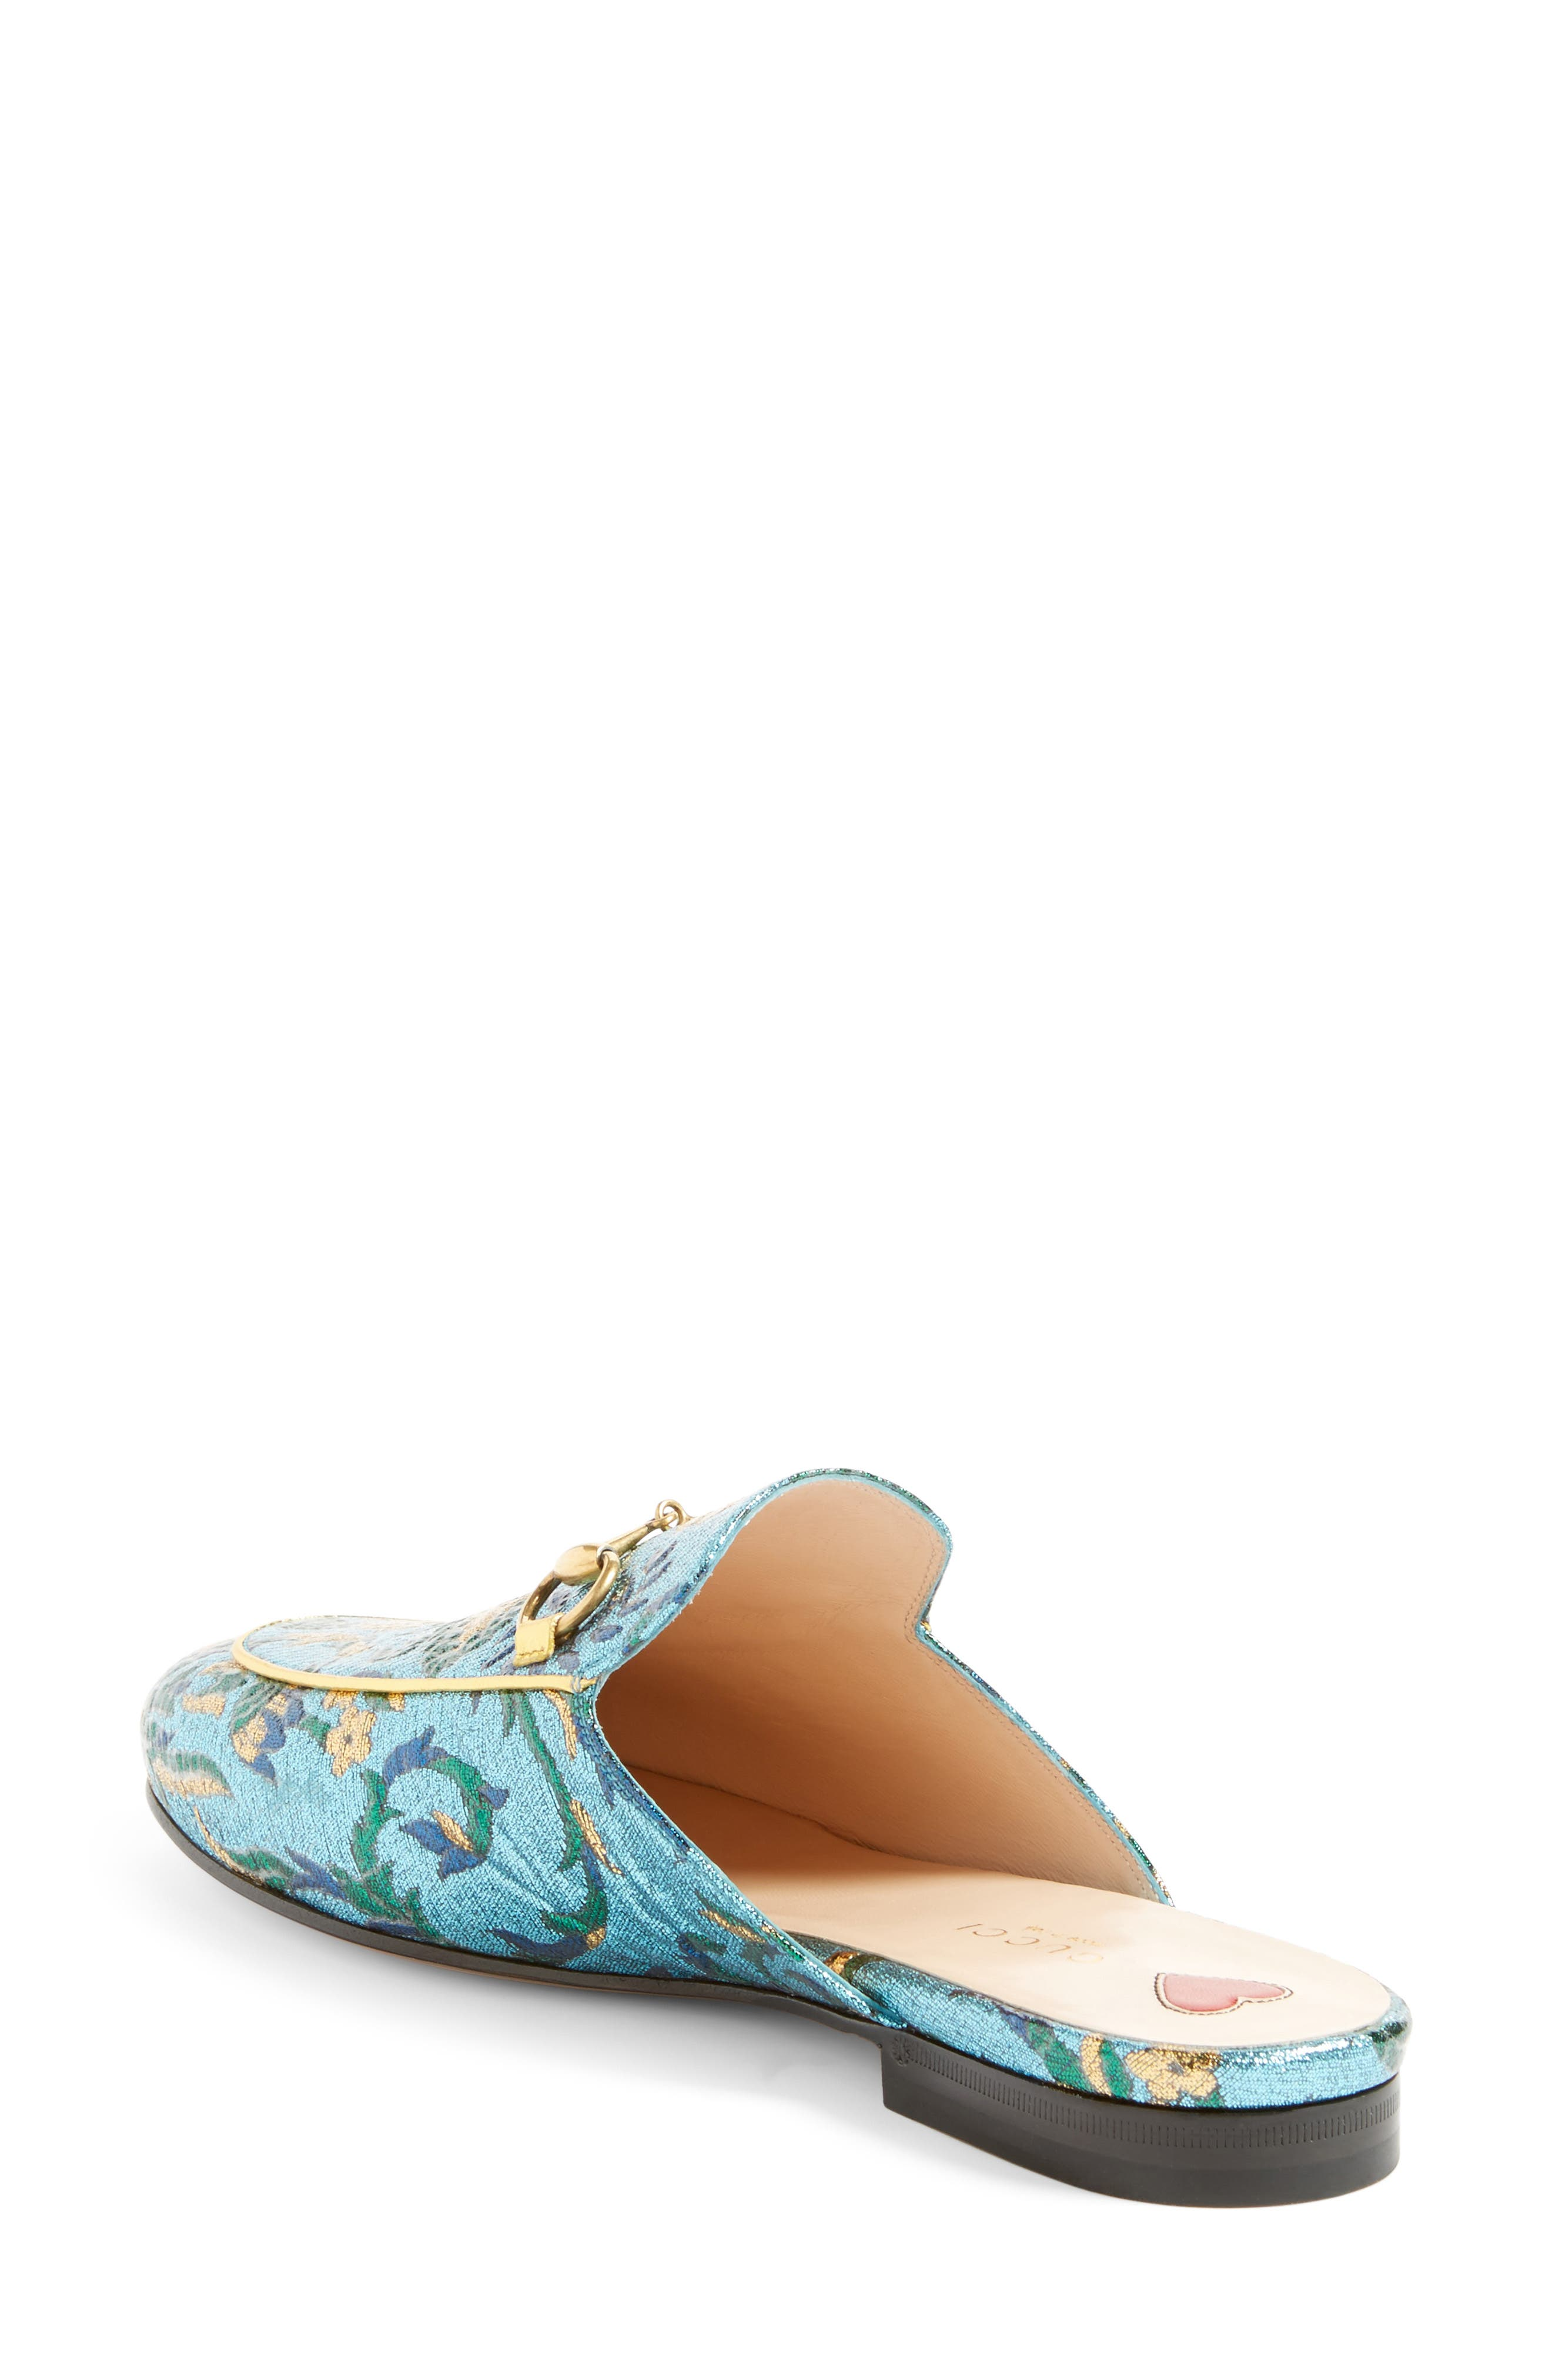 Princetown Loafer Mule,                             Alternate thumbnail 3, color,